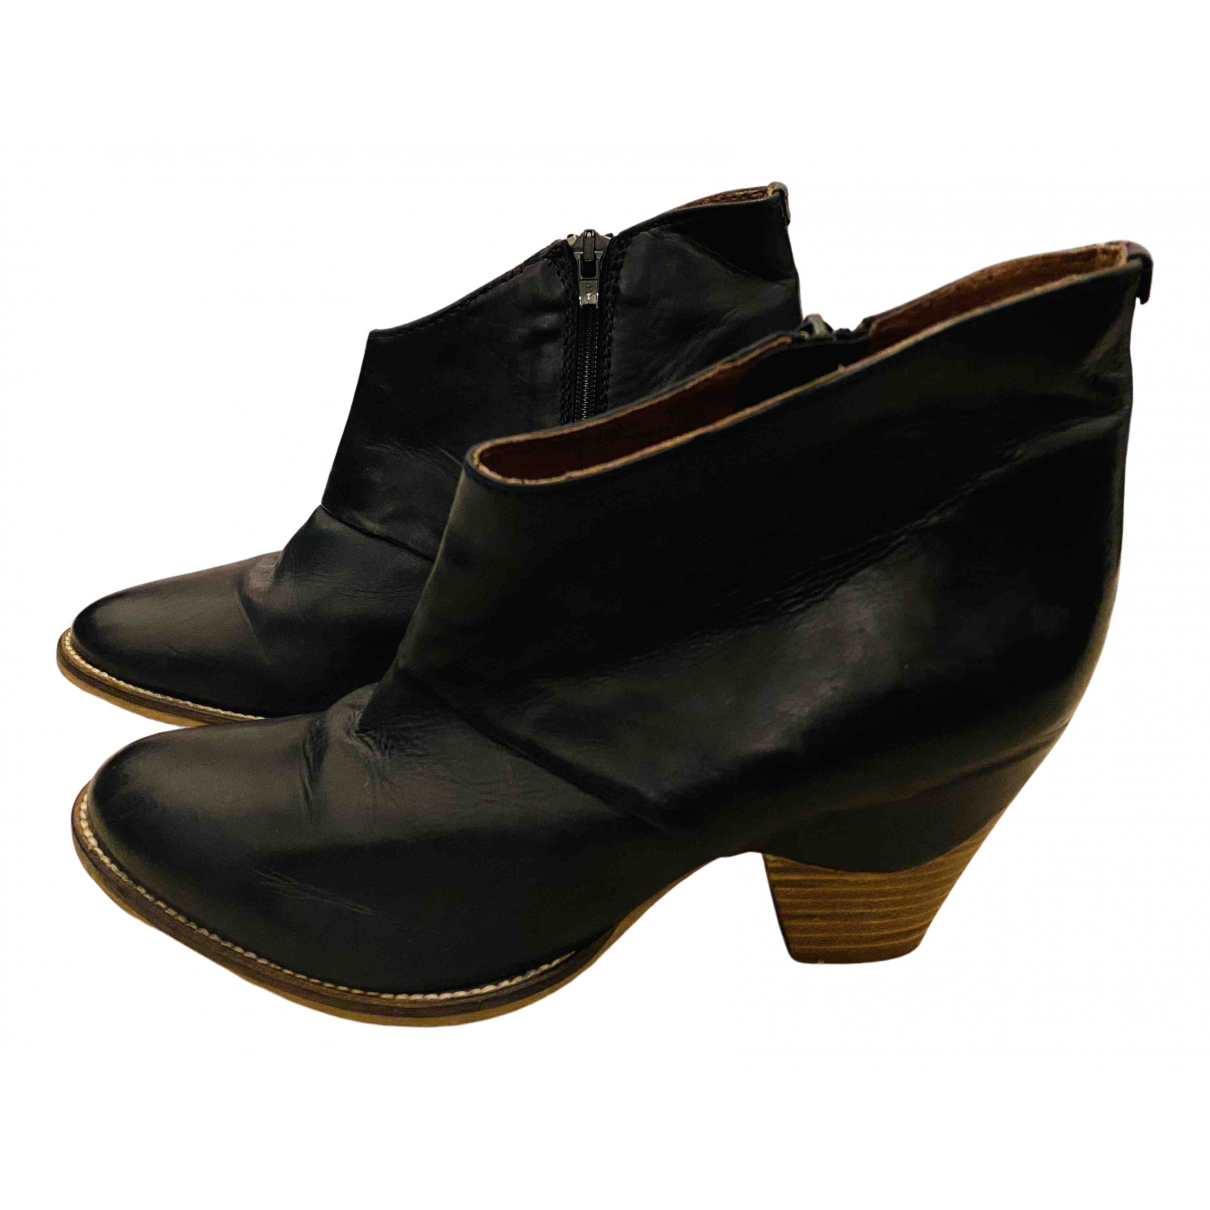 Clarks N Black Leather Boots for Women 5 UK